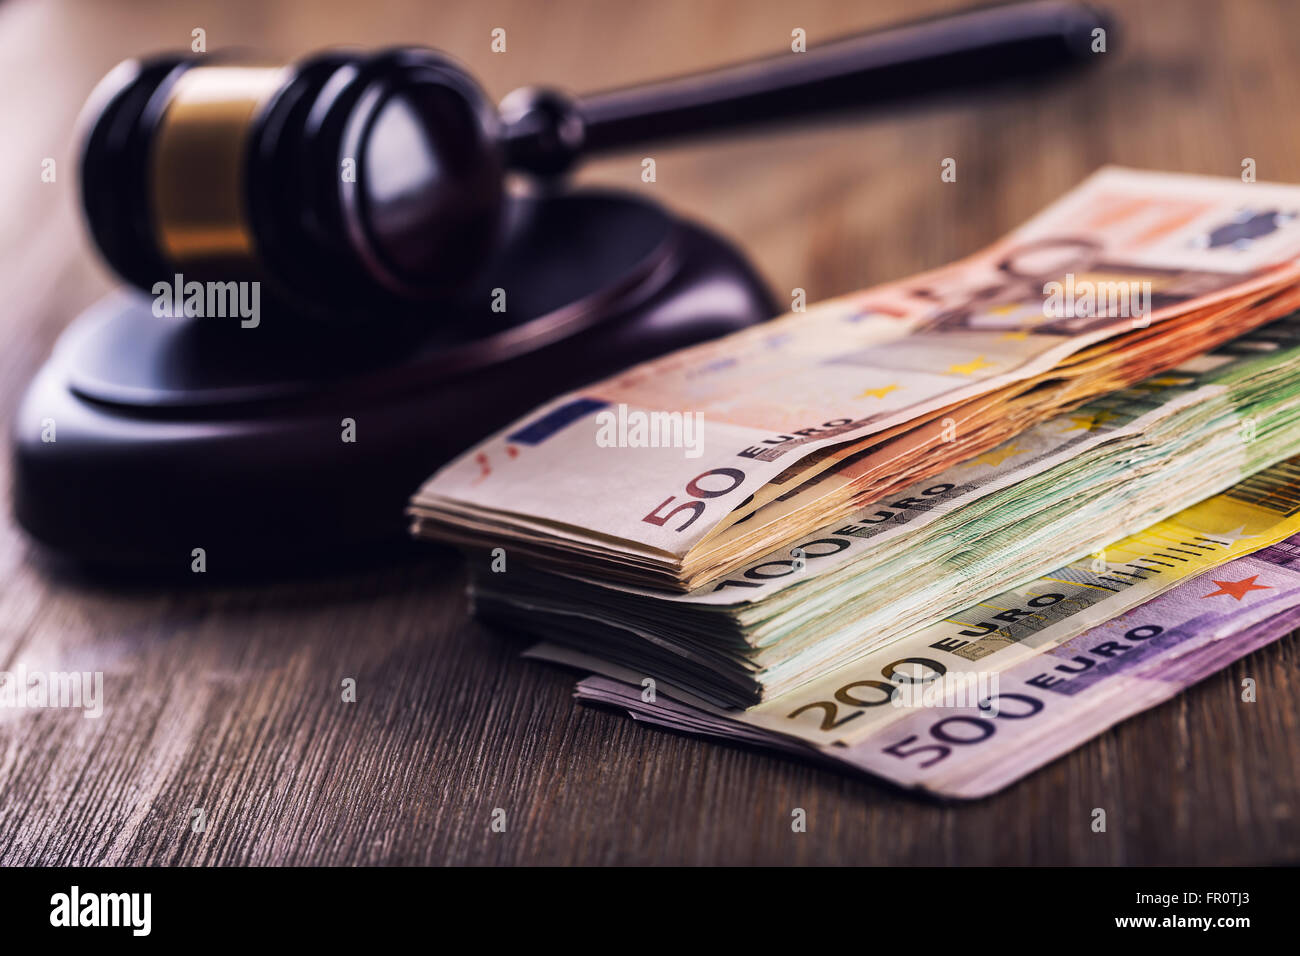 Judge's hammer gavel. Justice and euro money. Euro currency. Court gavel and rolled Euro banknotes. Representation - Stock Image